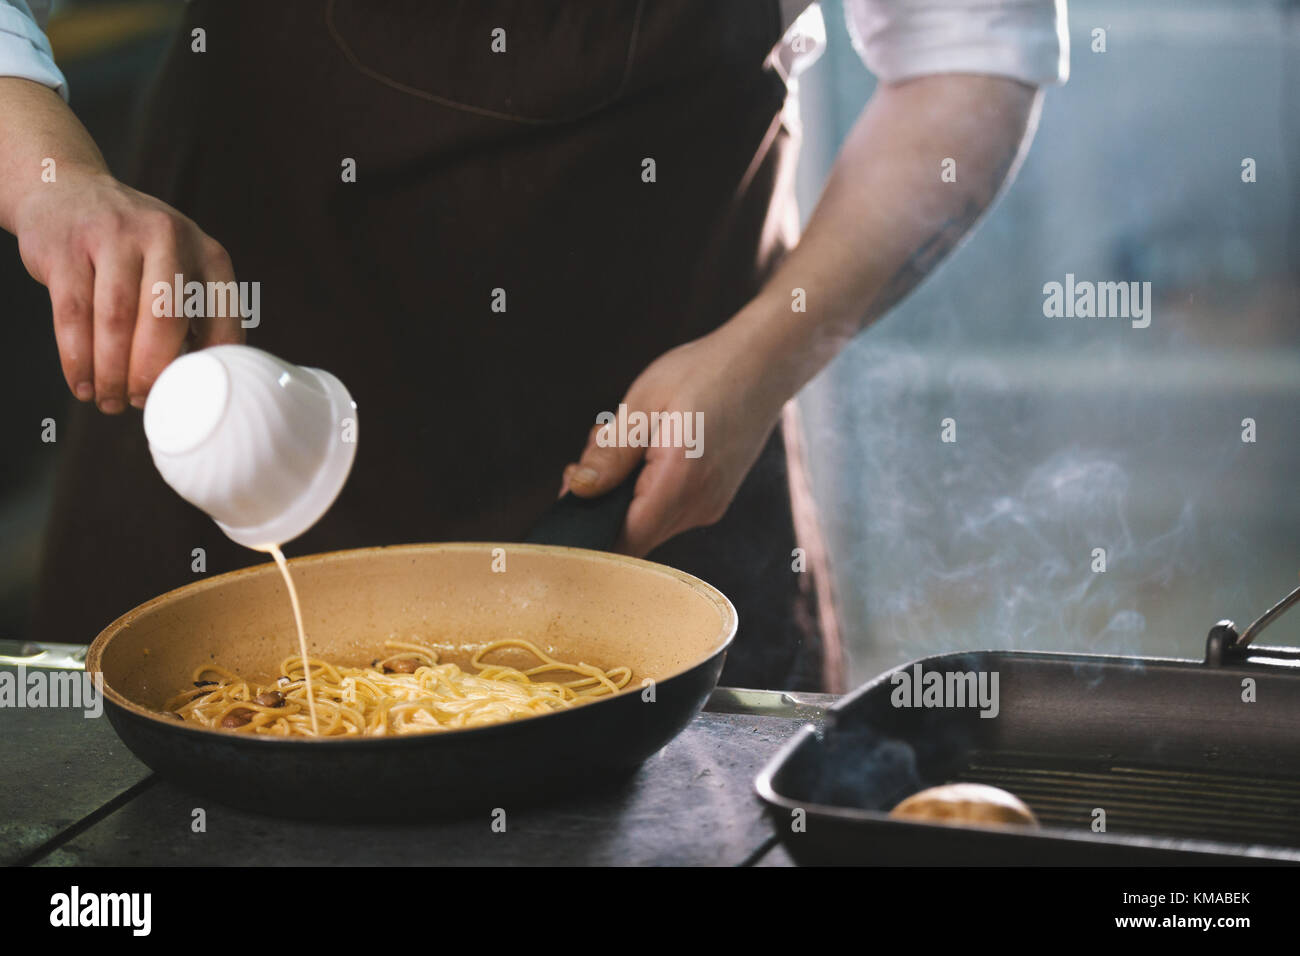 Chef is pouring the sauce into spaghetti - Stock Image